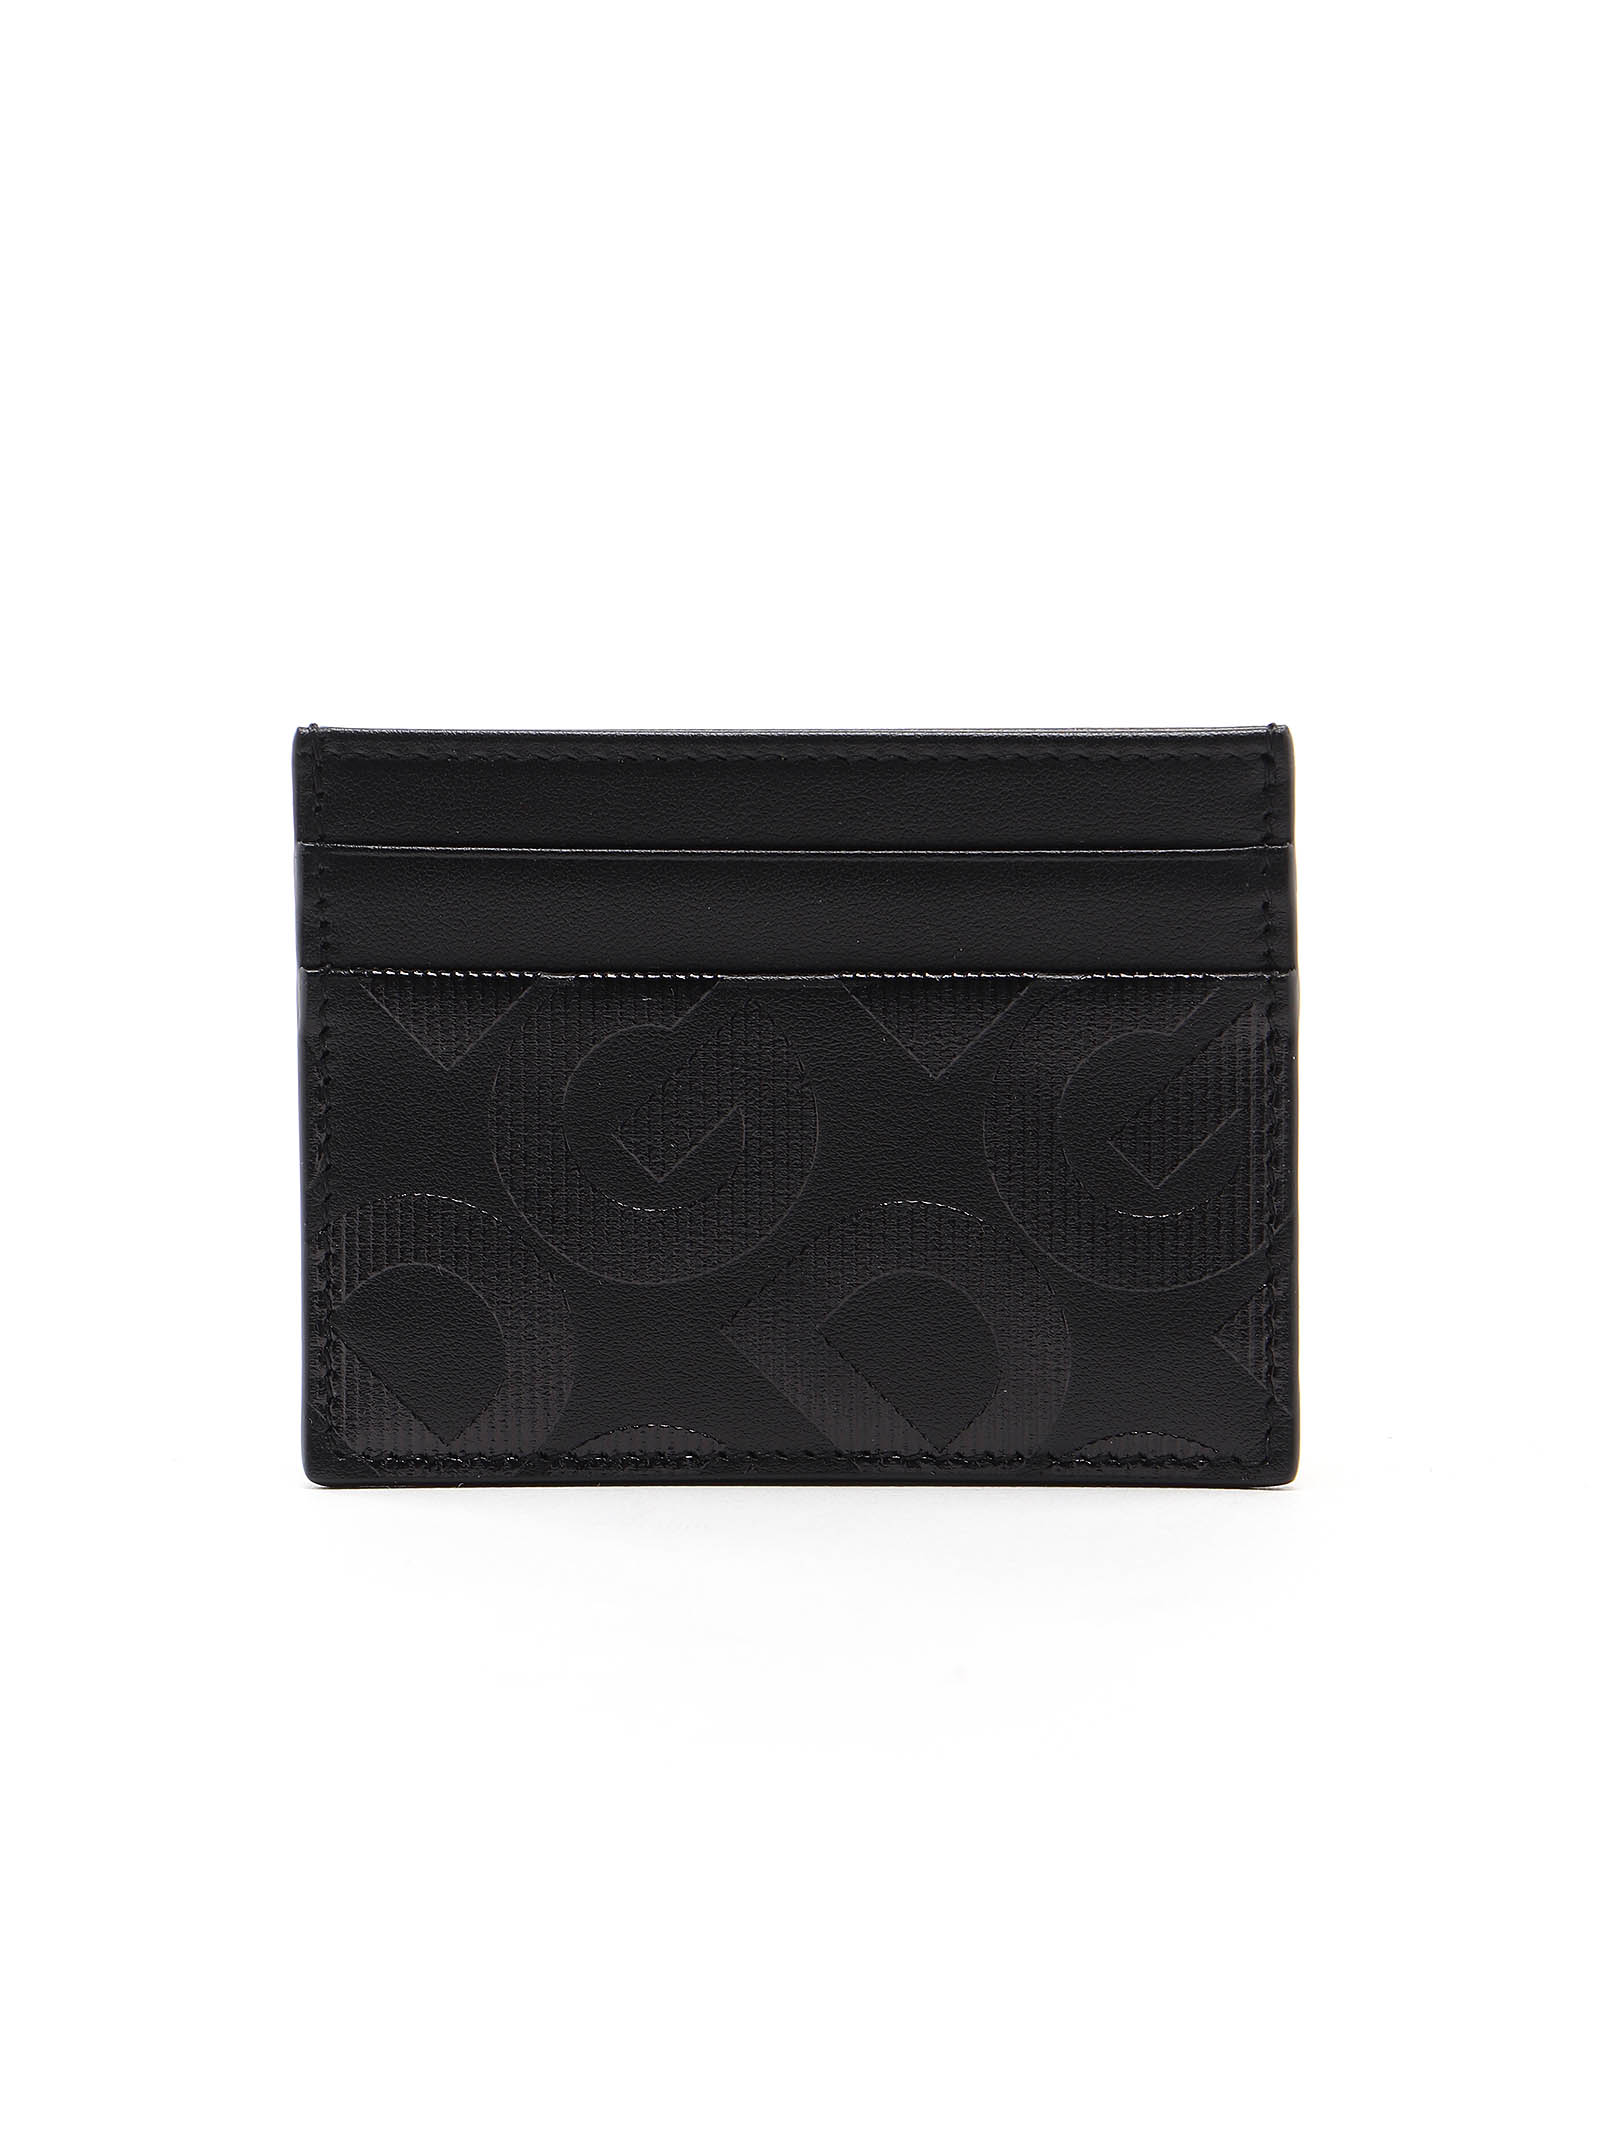 Picture of Dolce & Gabbana   Credit Card Case